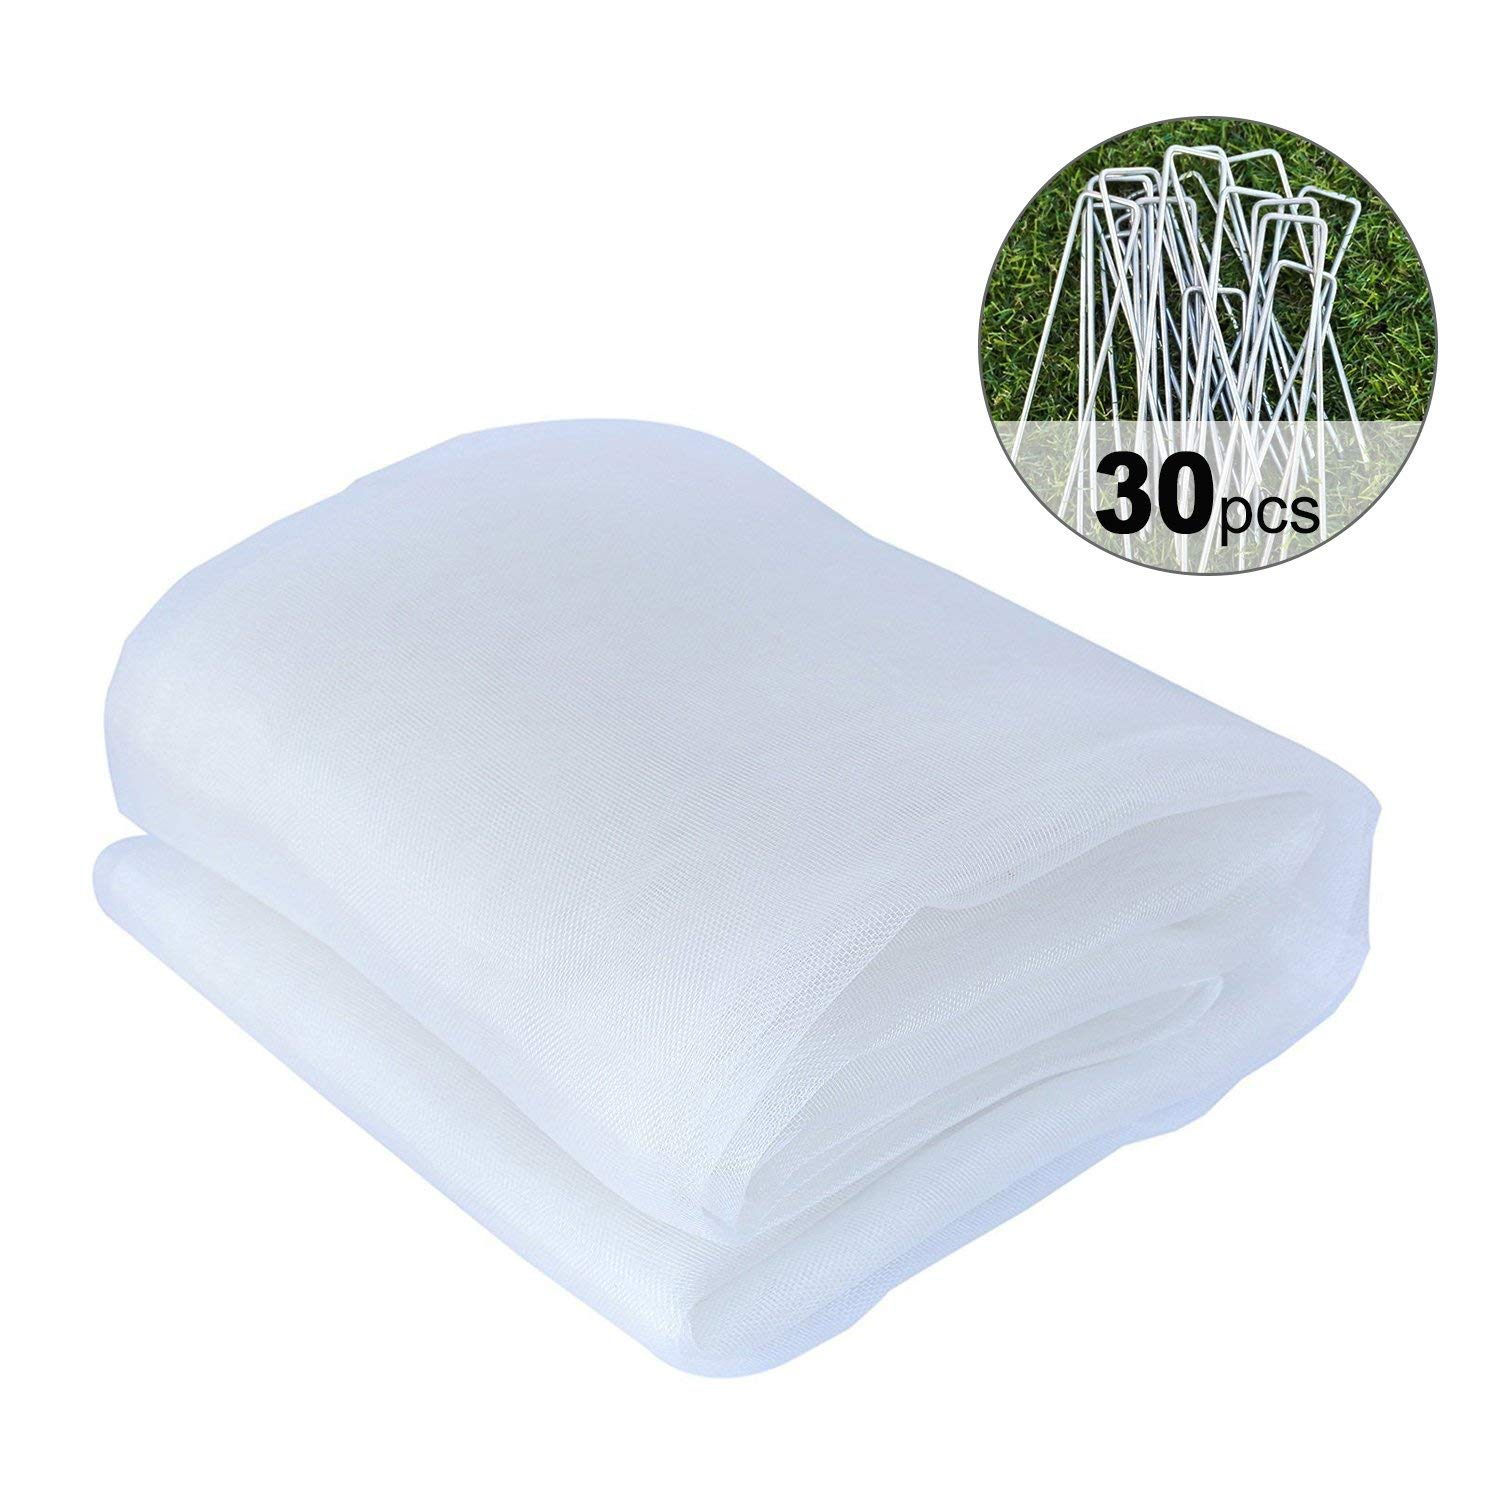 Agfabric 10x30ft Mosquito, Garden Bug Insect Netting,Insect Barrier Bird Net Barrier Hunting Blind Garden Netting with 30 Pegs